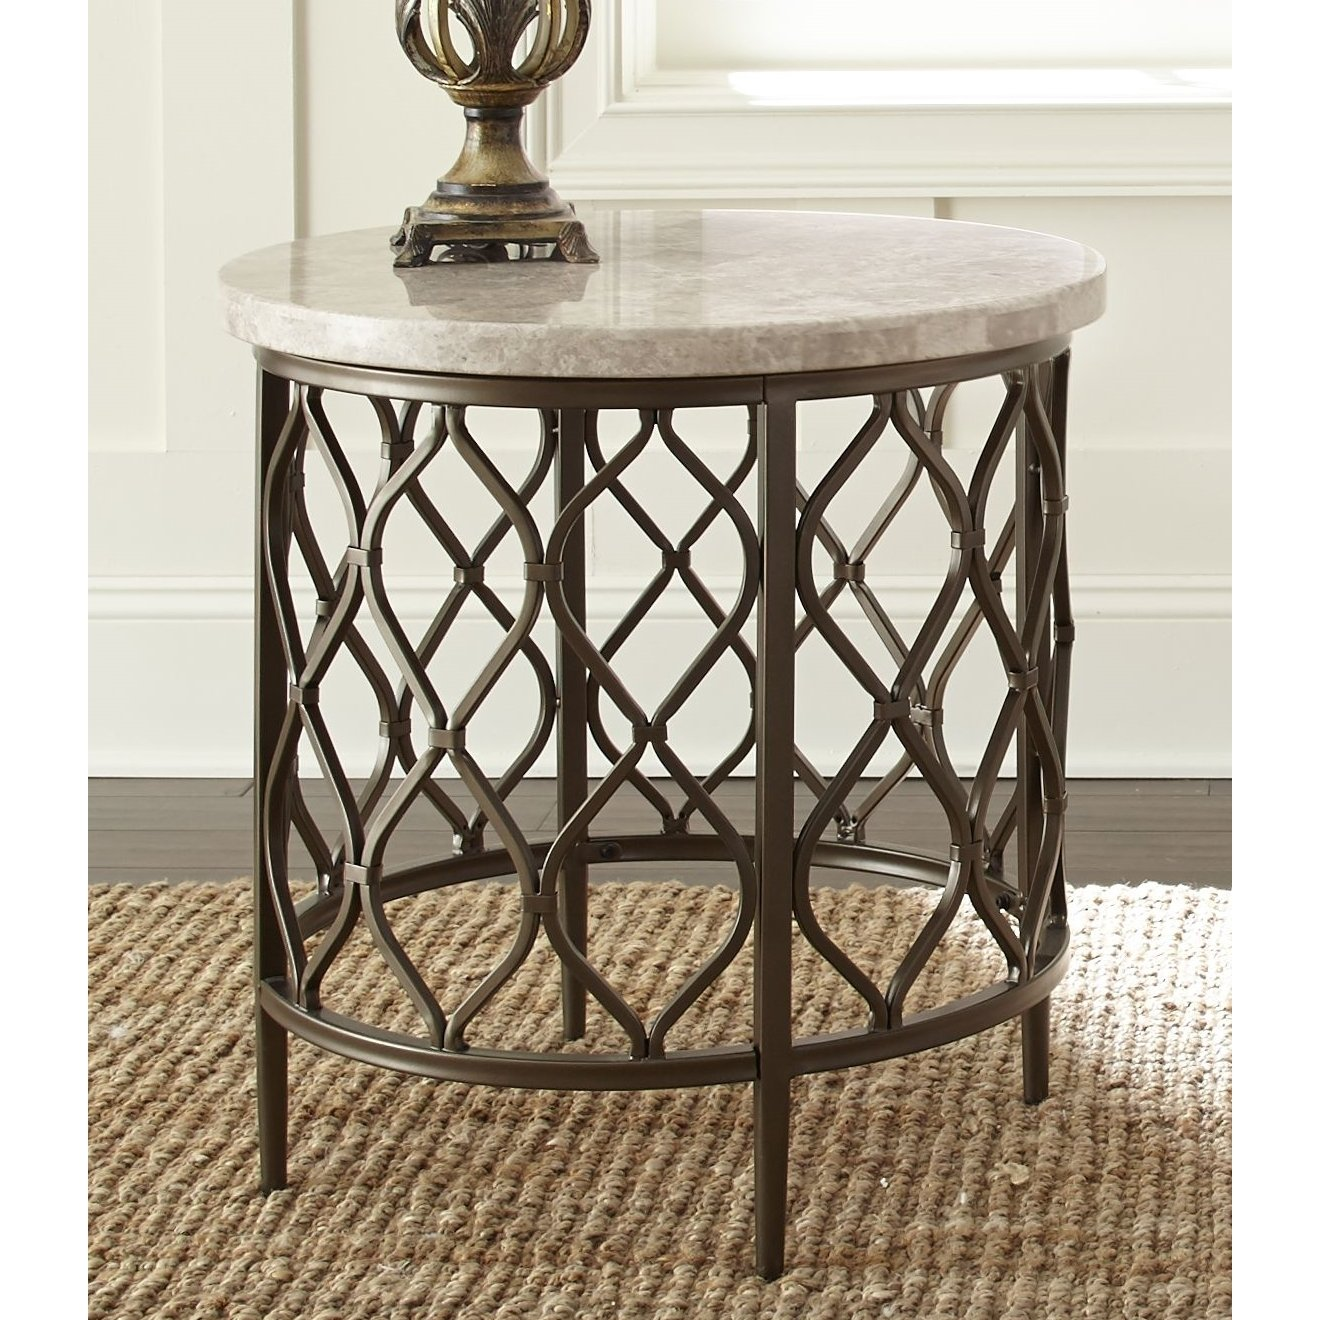 rockvale stone top round end table greyson living free outdoor mosaic accent shipping today bar height patio furniture unique rustic tables lift coffee dale home crystal lamp